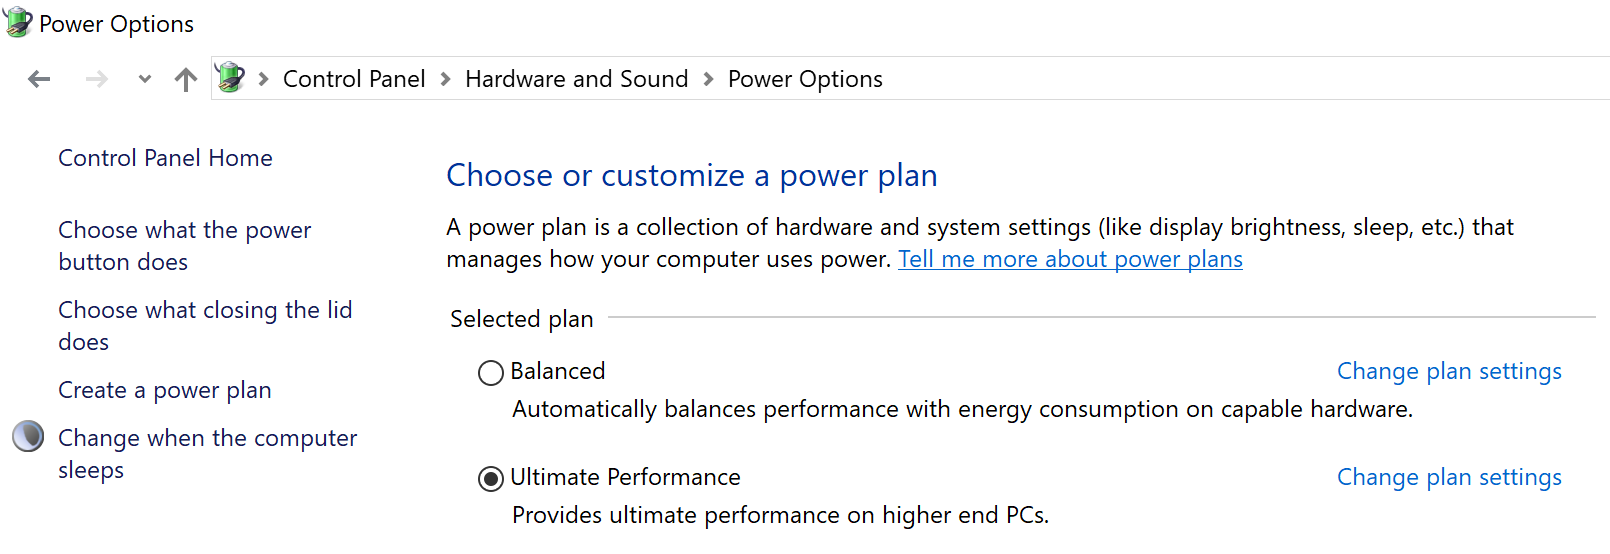 Microsoft adds 'Ultimate Performance' mode to latest Windows